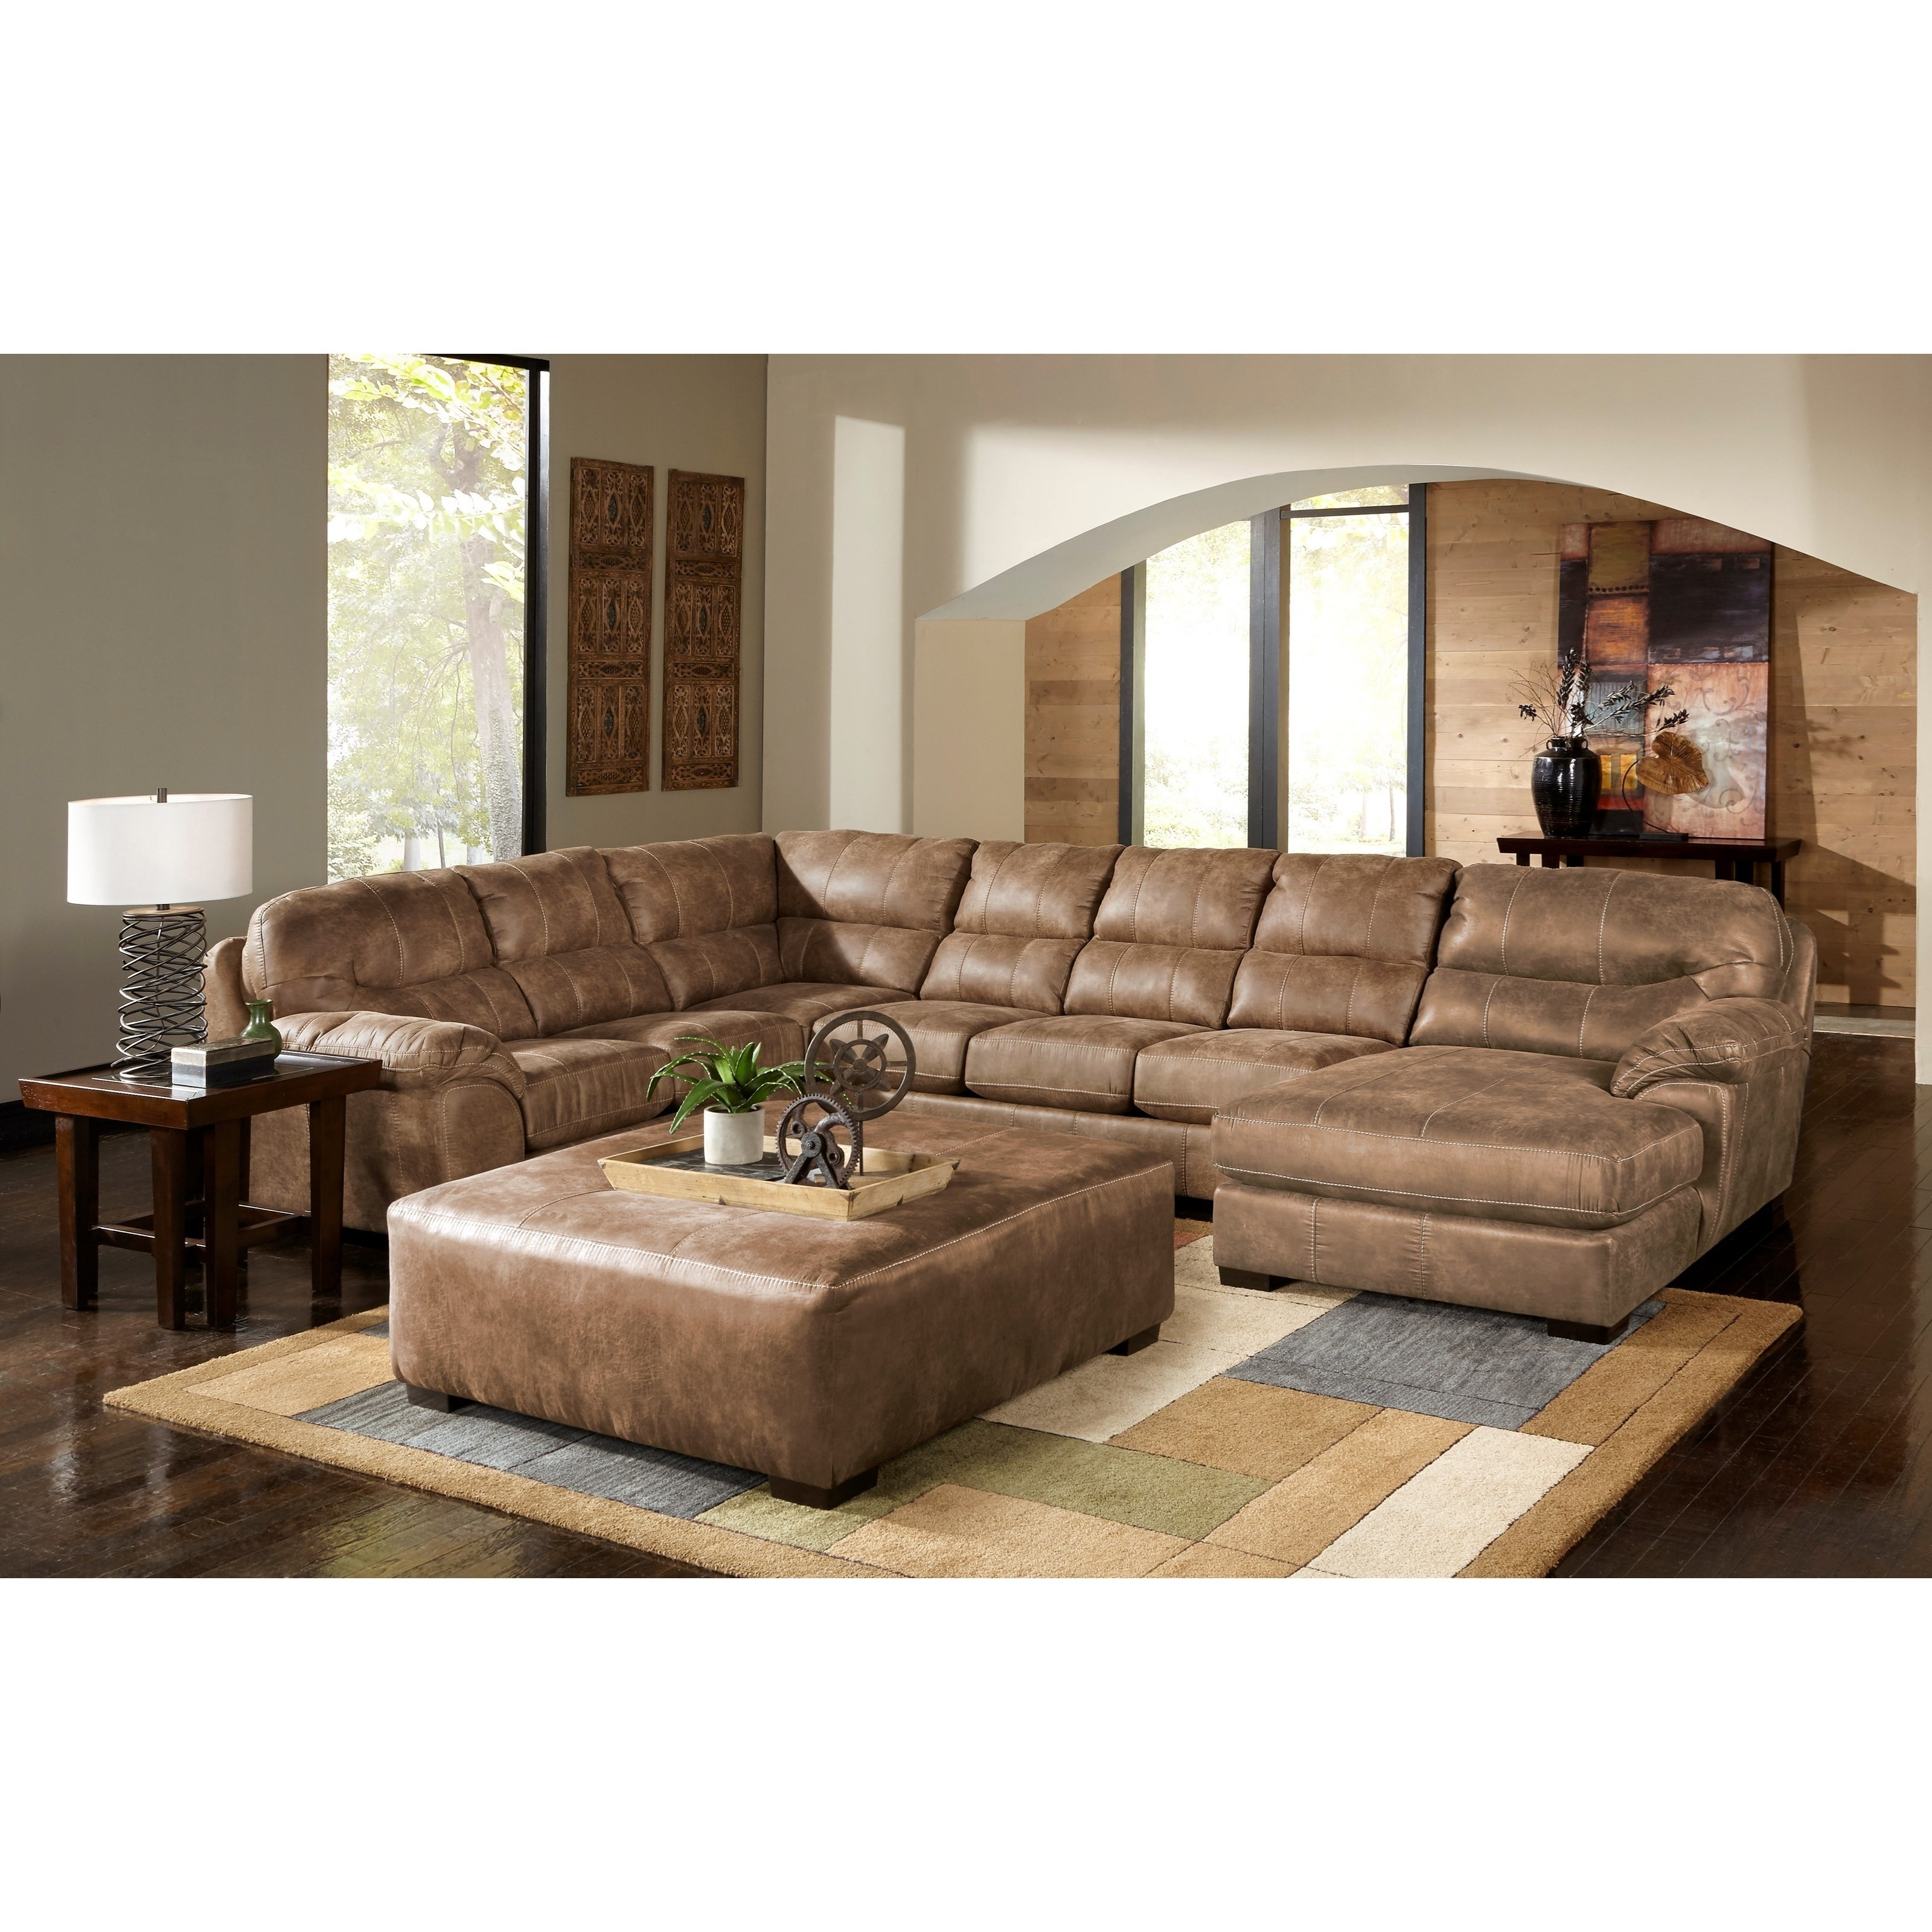 Jackson Furniture Grant Sectional Sofa Wayside Products Color Silt throughout Jackson 6 Piece Power Reclining Sectionals With Sleeper